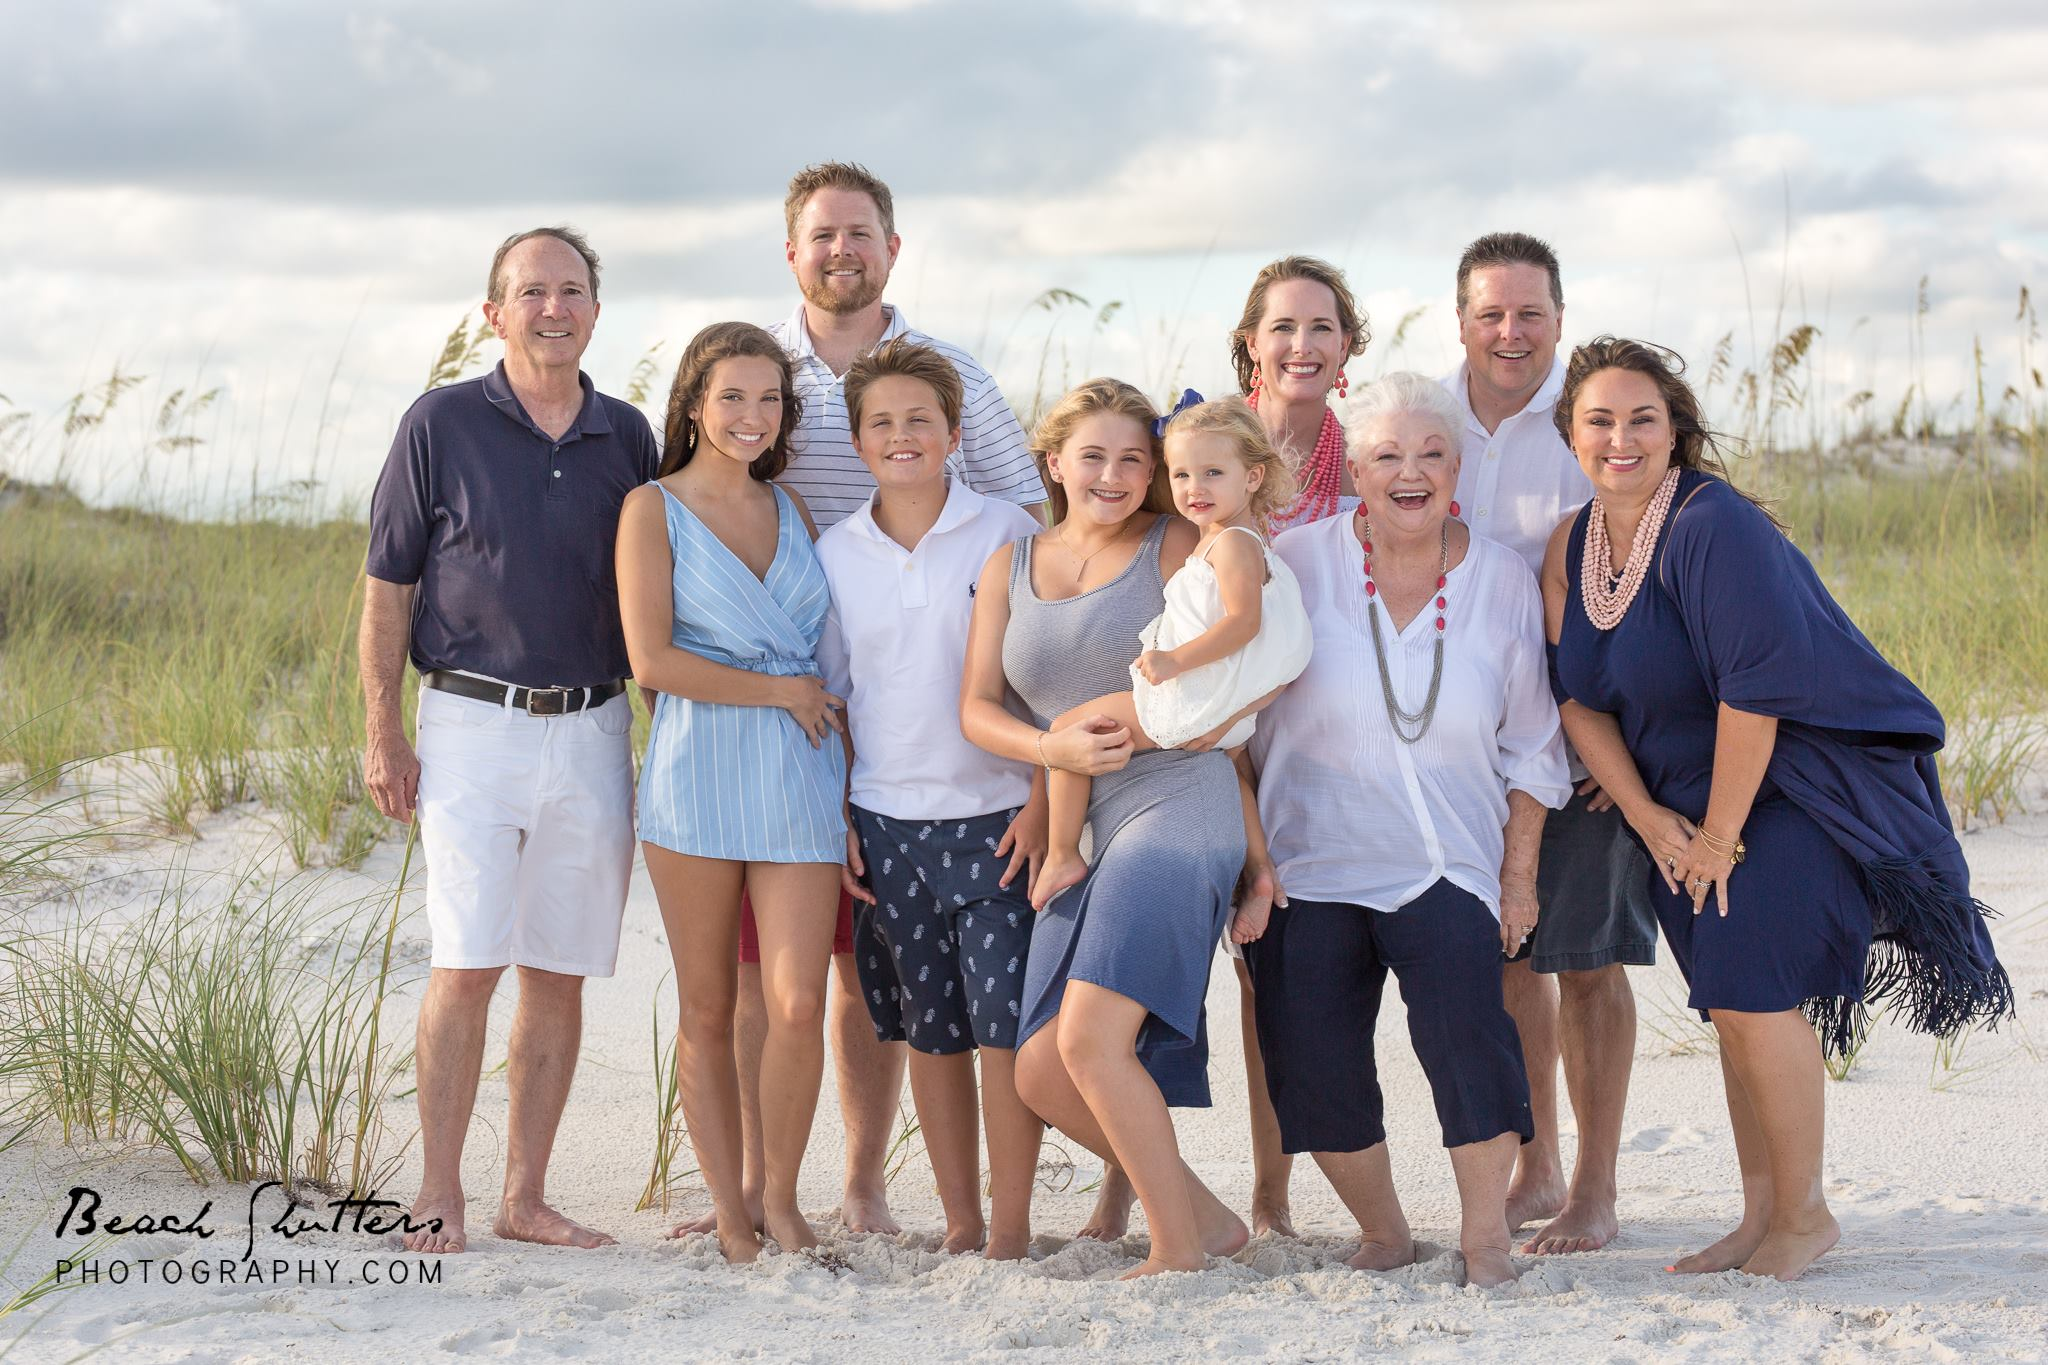 Gulf Shores photographer for family and large reunion photography in Alabama